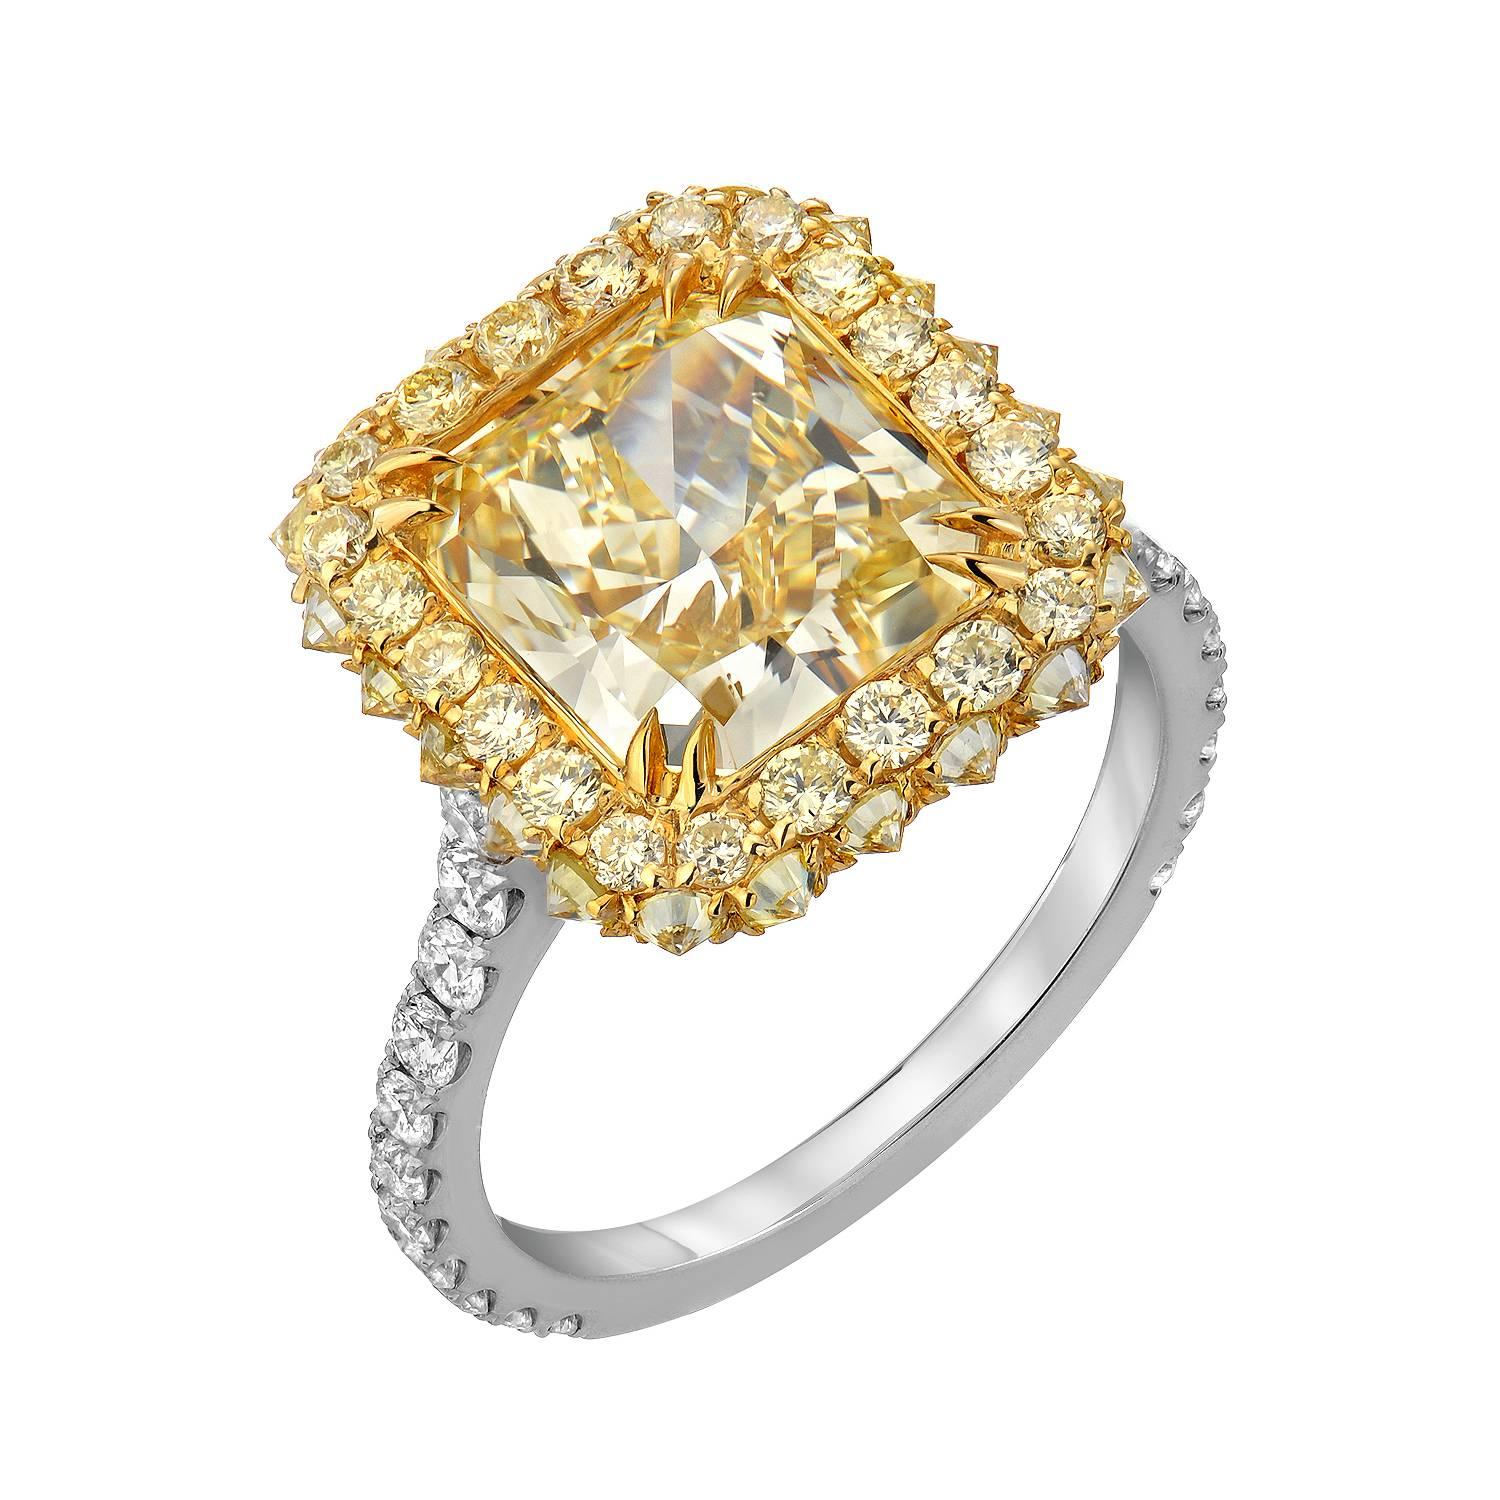 my diamonds one klum light here ring img the but too to heidi for prefer fancy intense i in it topic and while love s ering have beautiful also canary much diamond me yellow